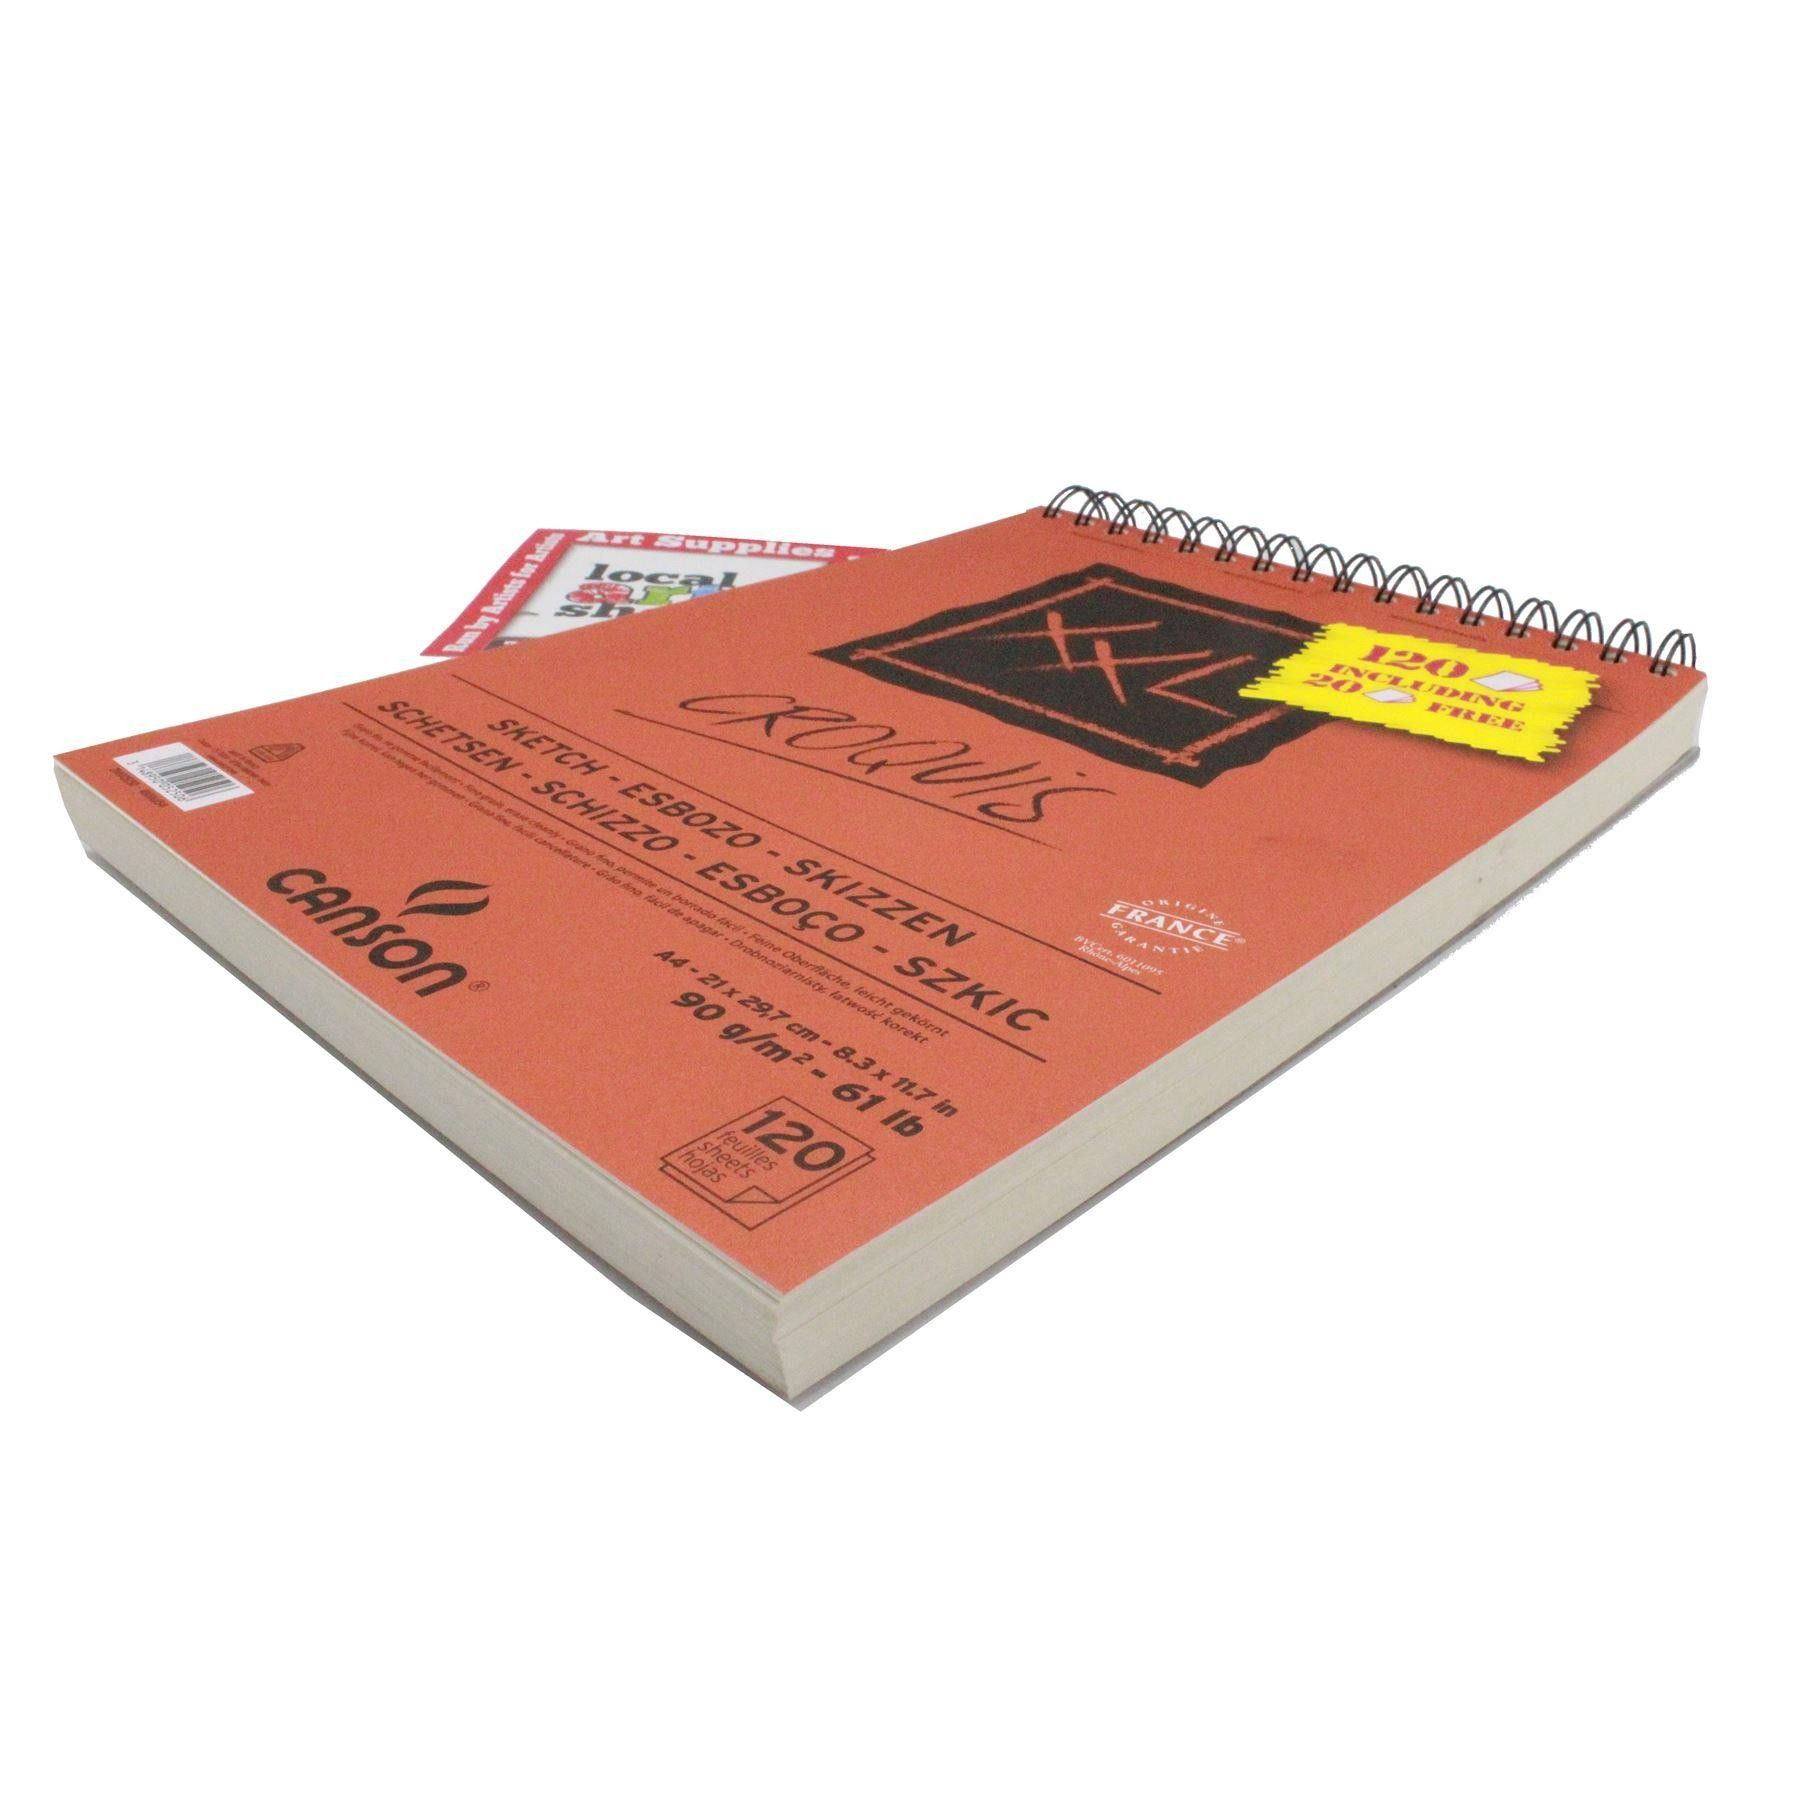 Canson Xxl Sketching Paper Pad Spiral A4 120 Sheets Paper 90g